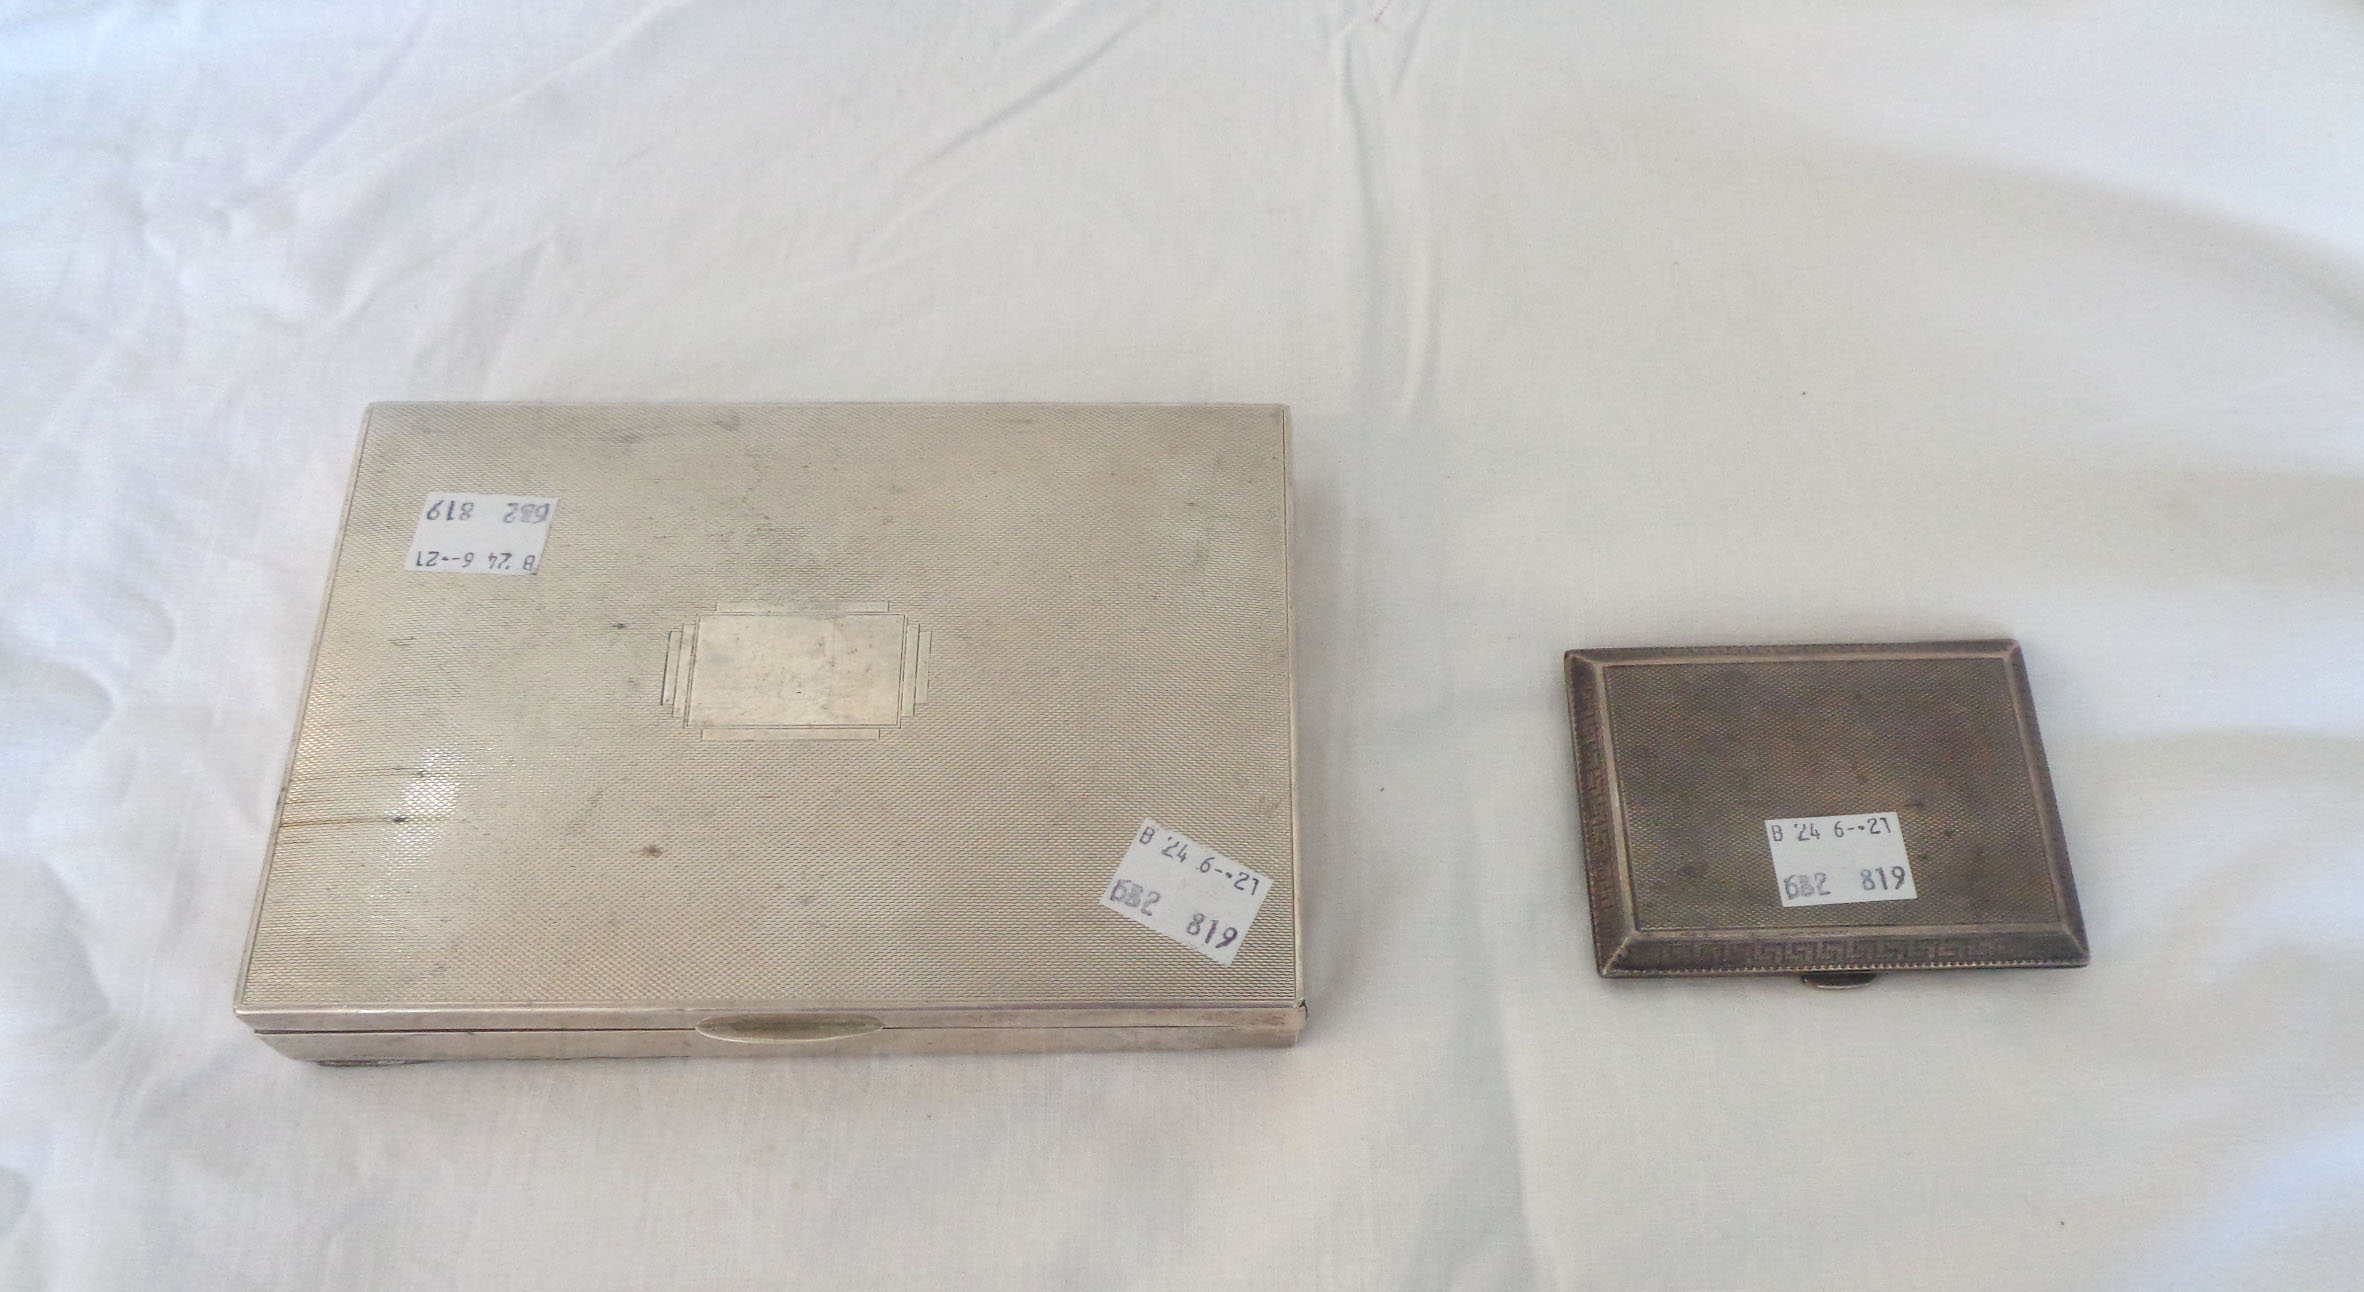 A silver clad cheroot box and a silver cigarette case - various condition